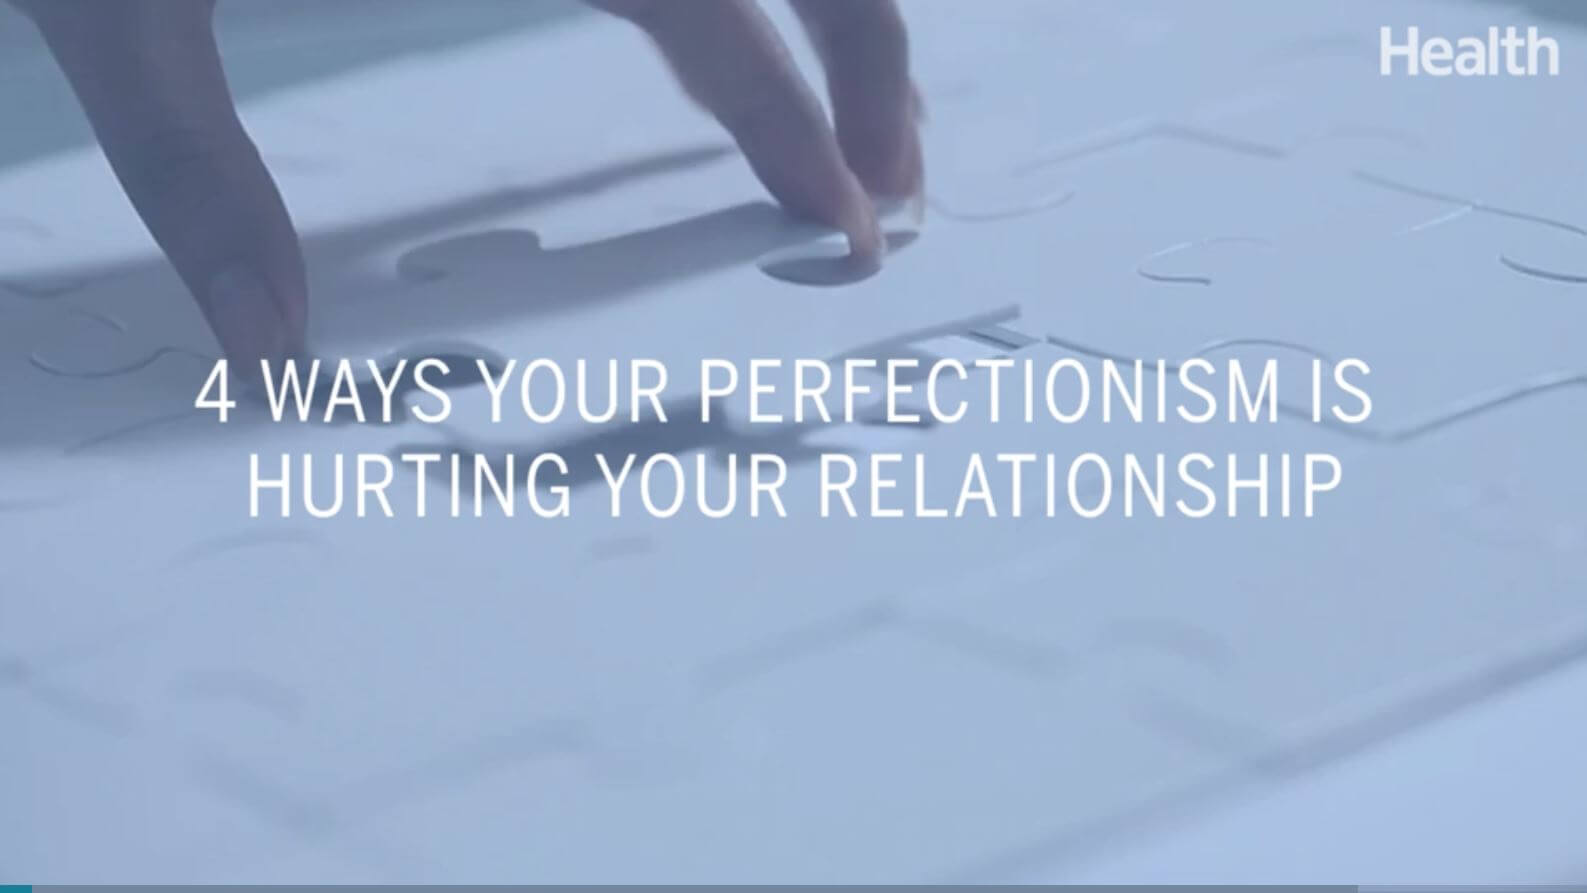 4 Ways Your Perfectionism Is Hurting Your Relationship